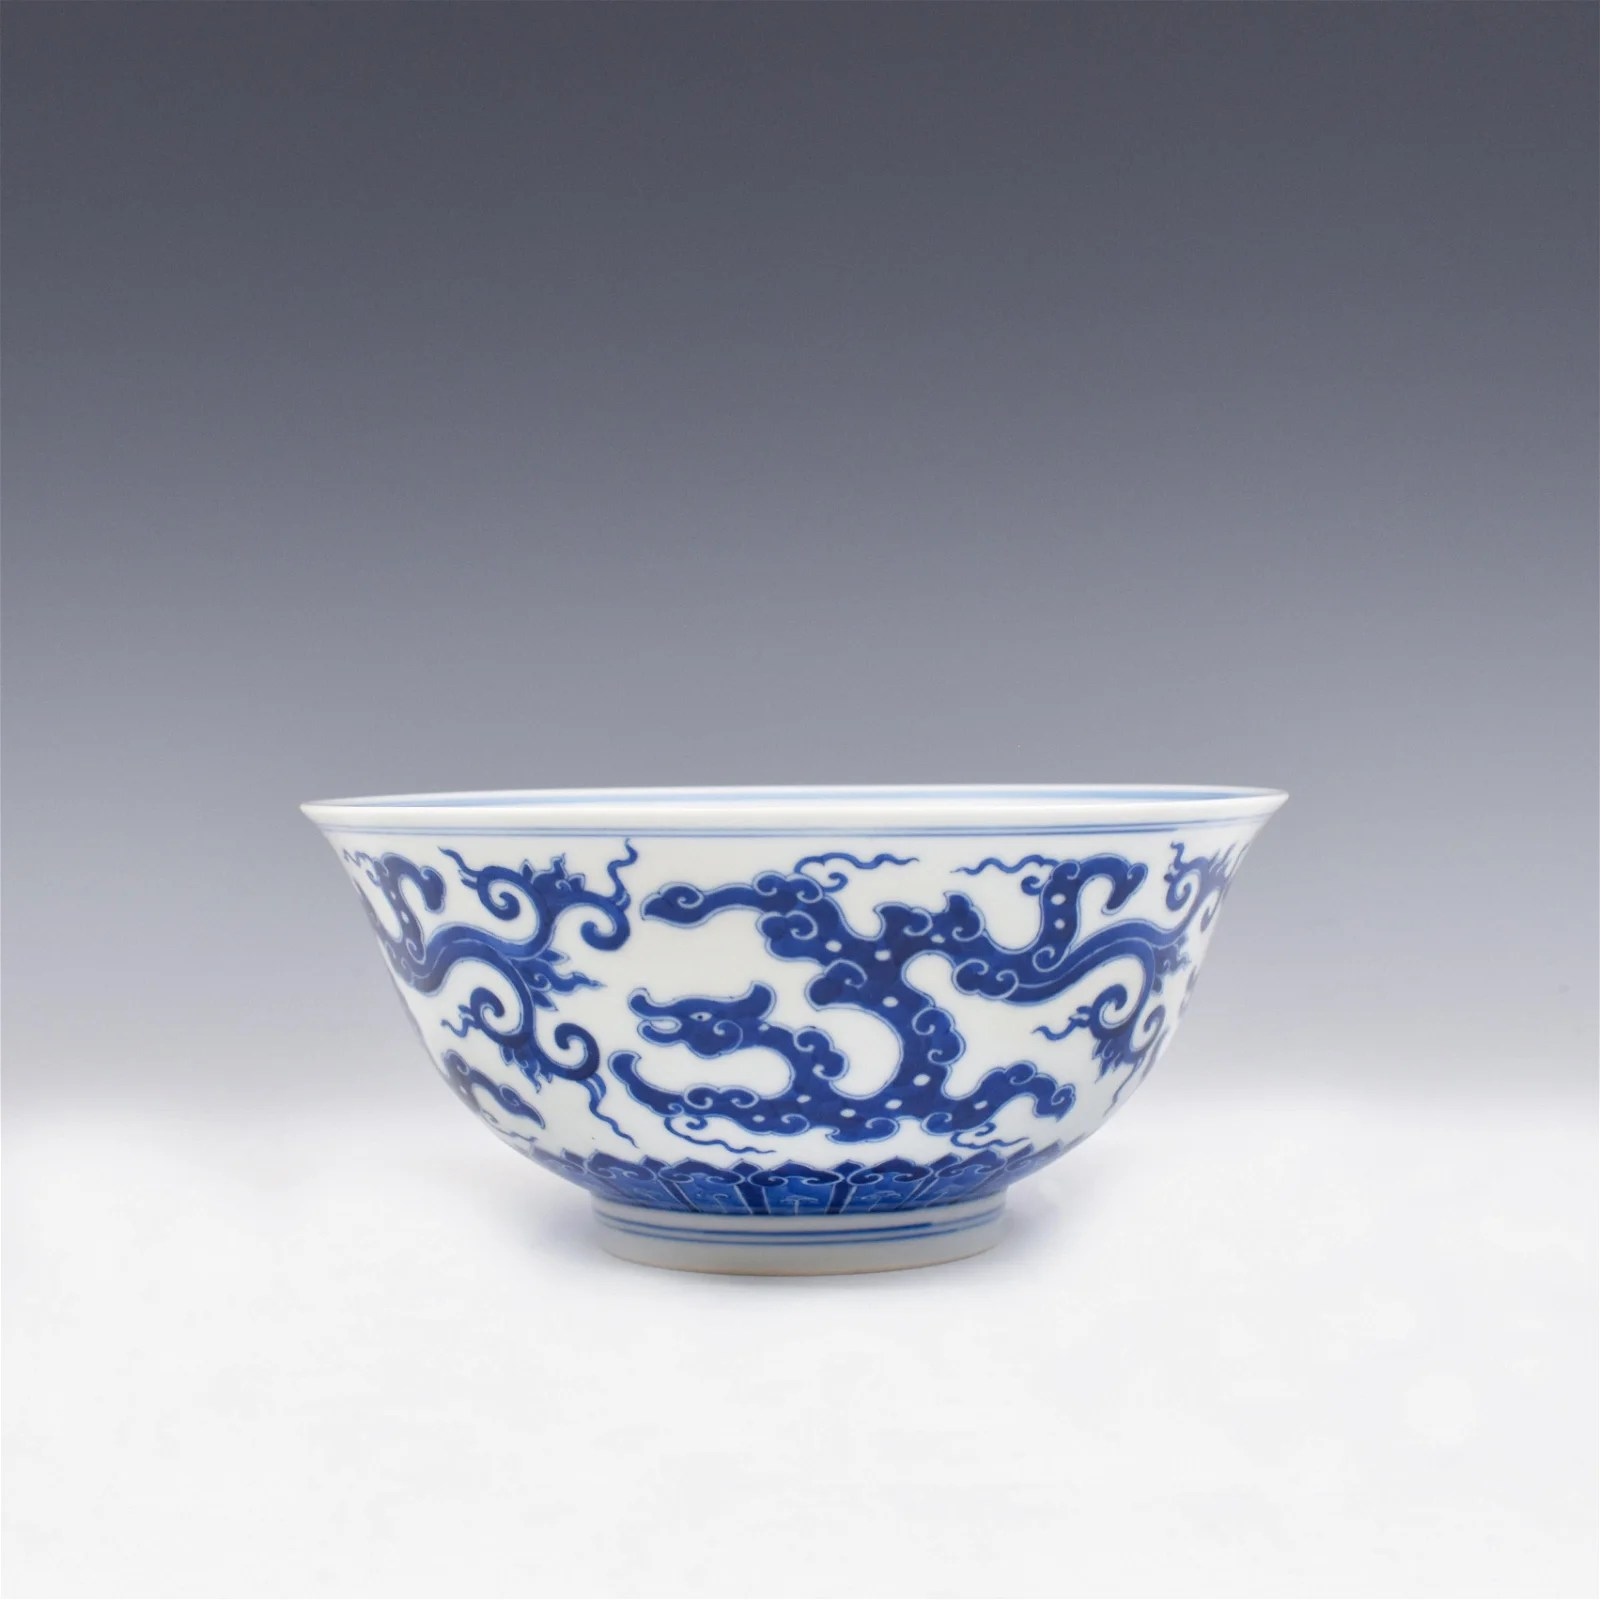 KANGXI BLUE AND WHITE DRAGON BOWL